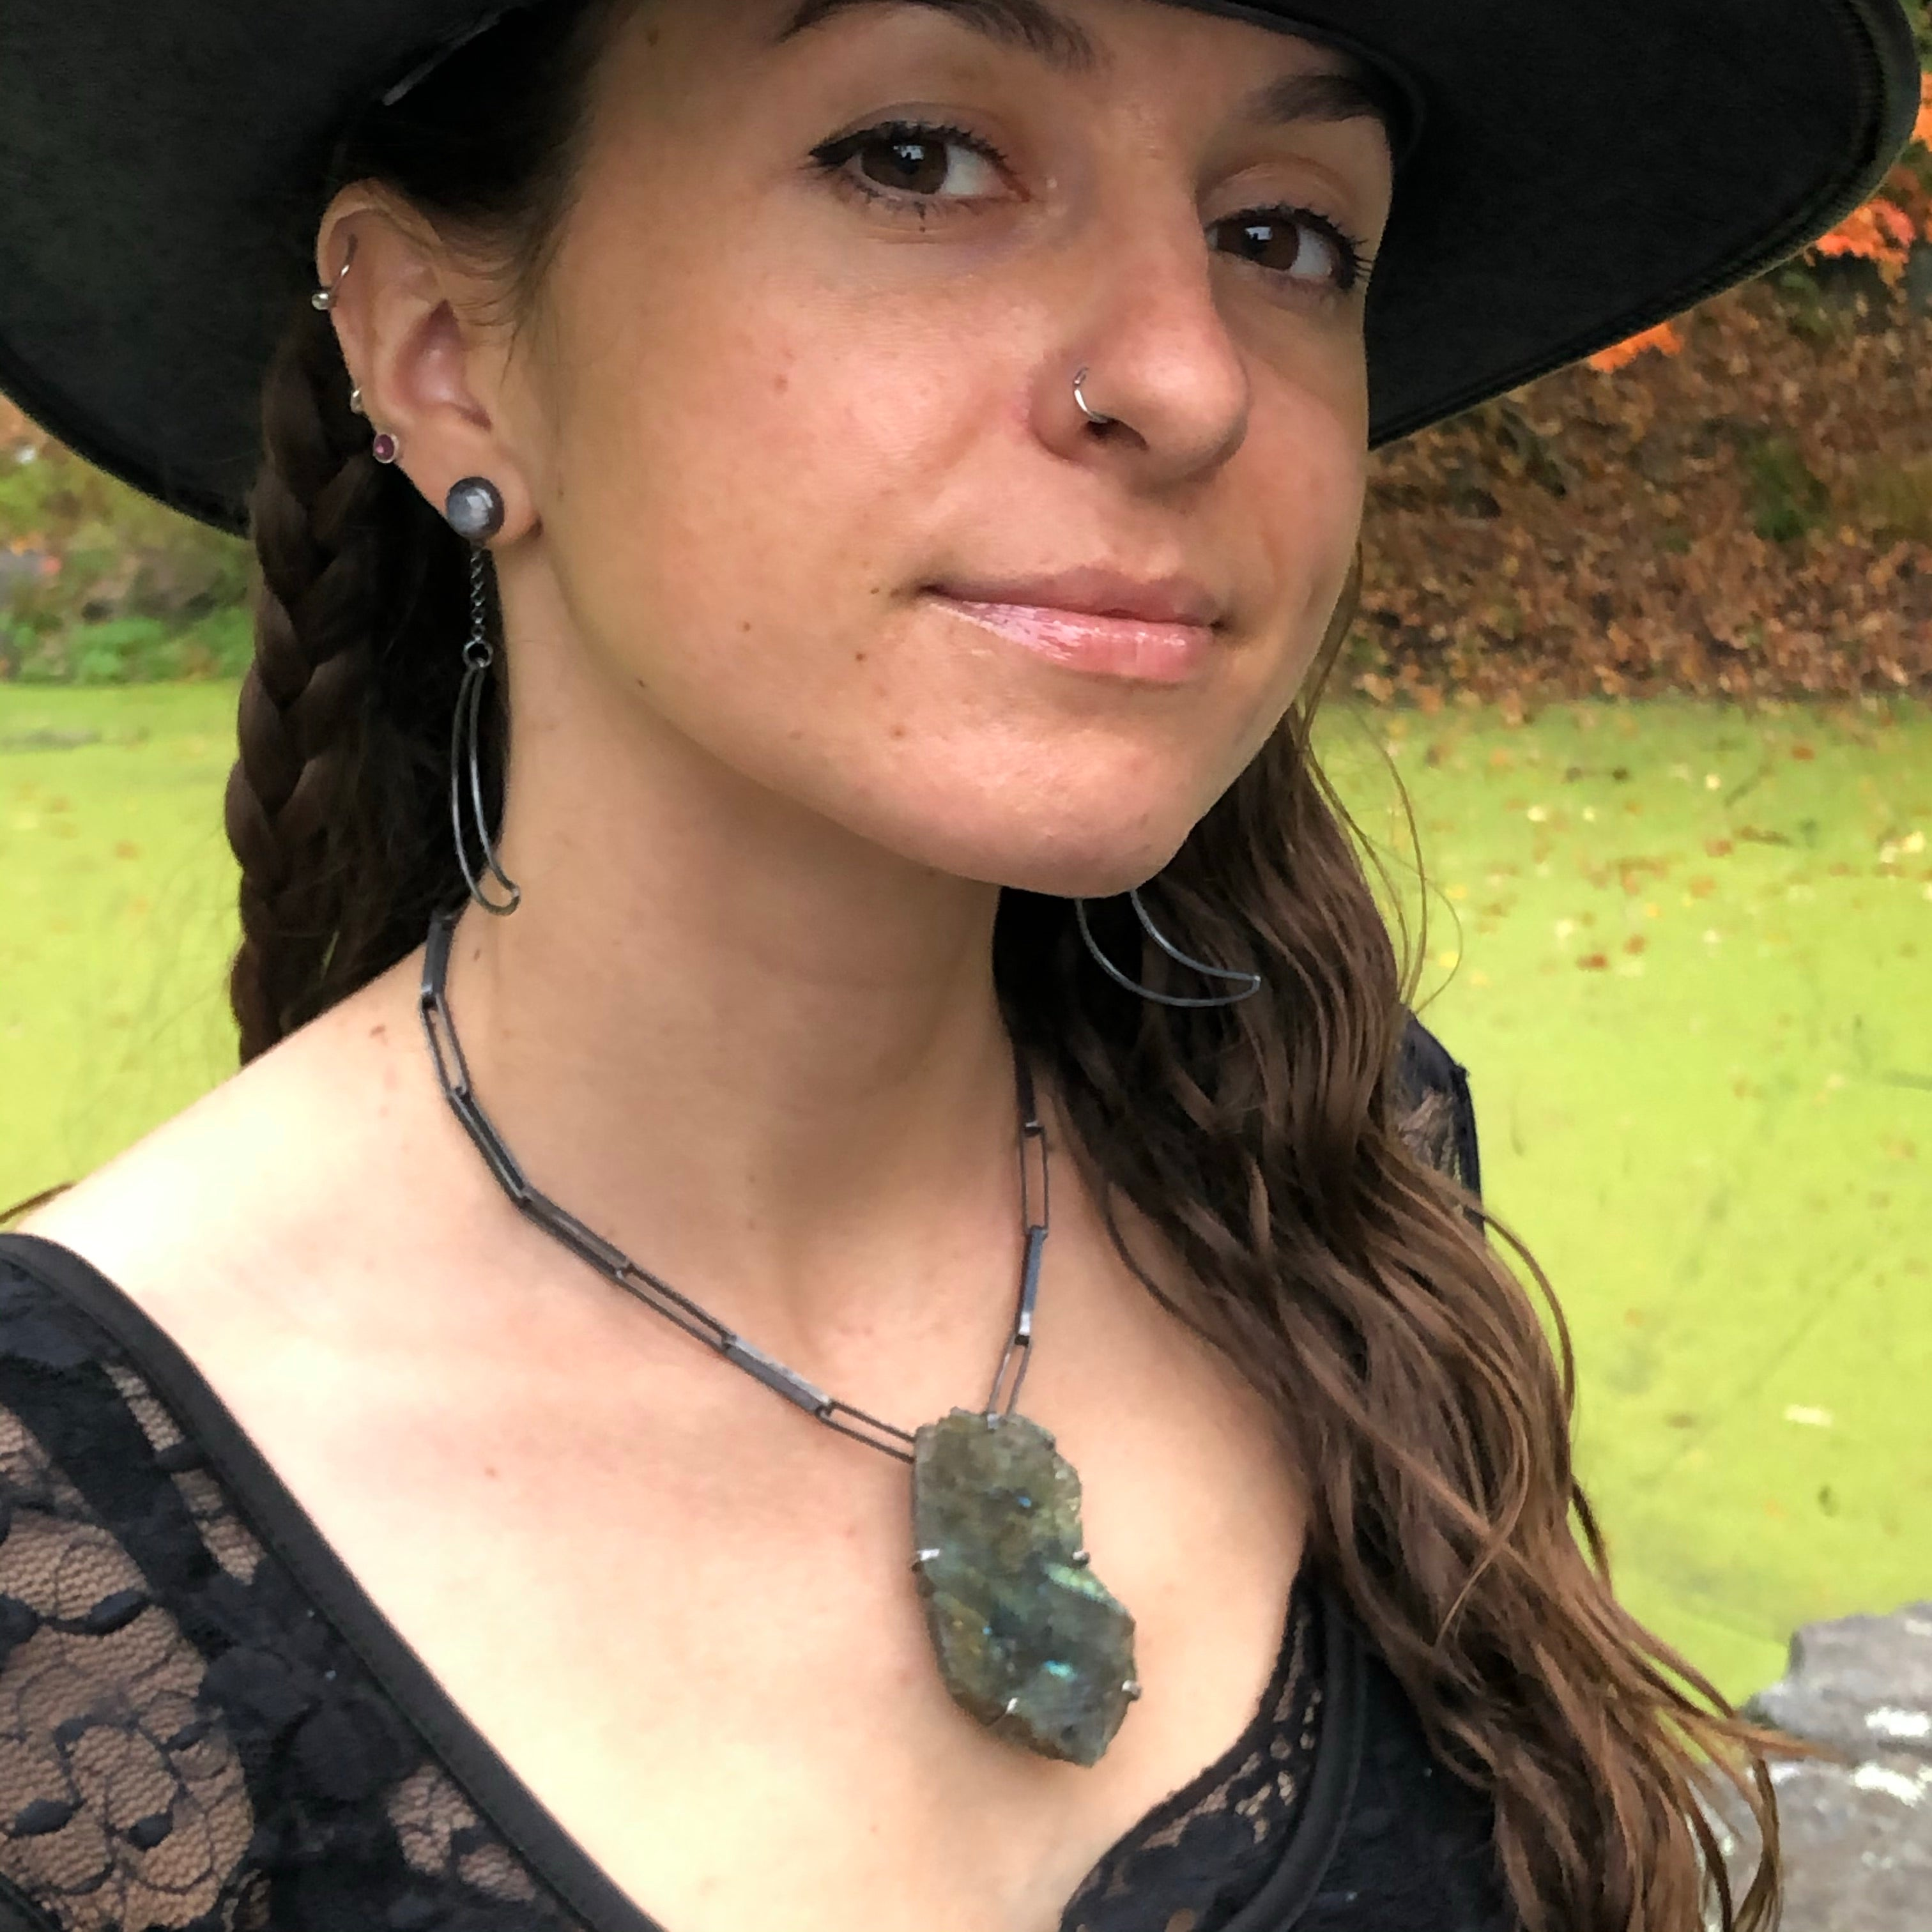 Labradorite Magical Talisman Necklace. Handmade by Alex Lozier Jewelry. Season of the Witch collection.